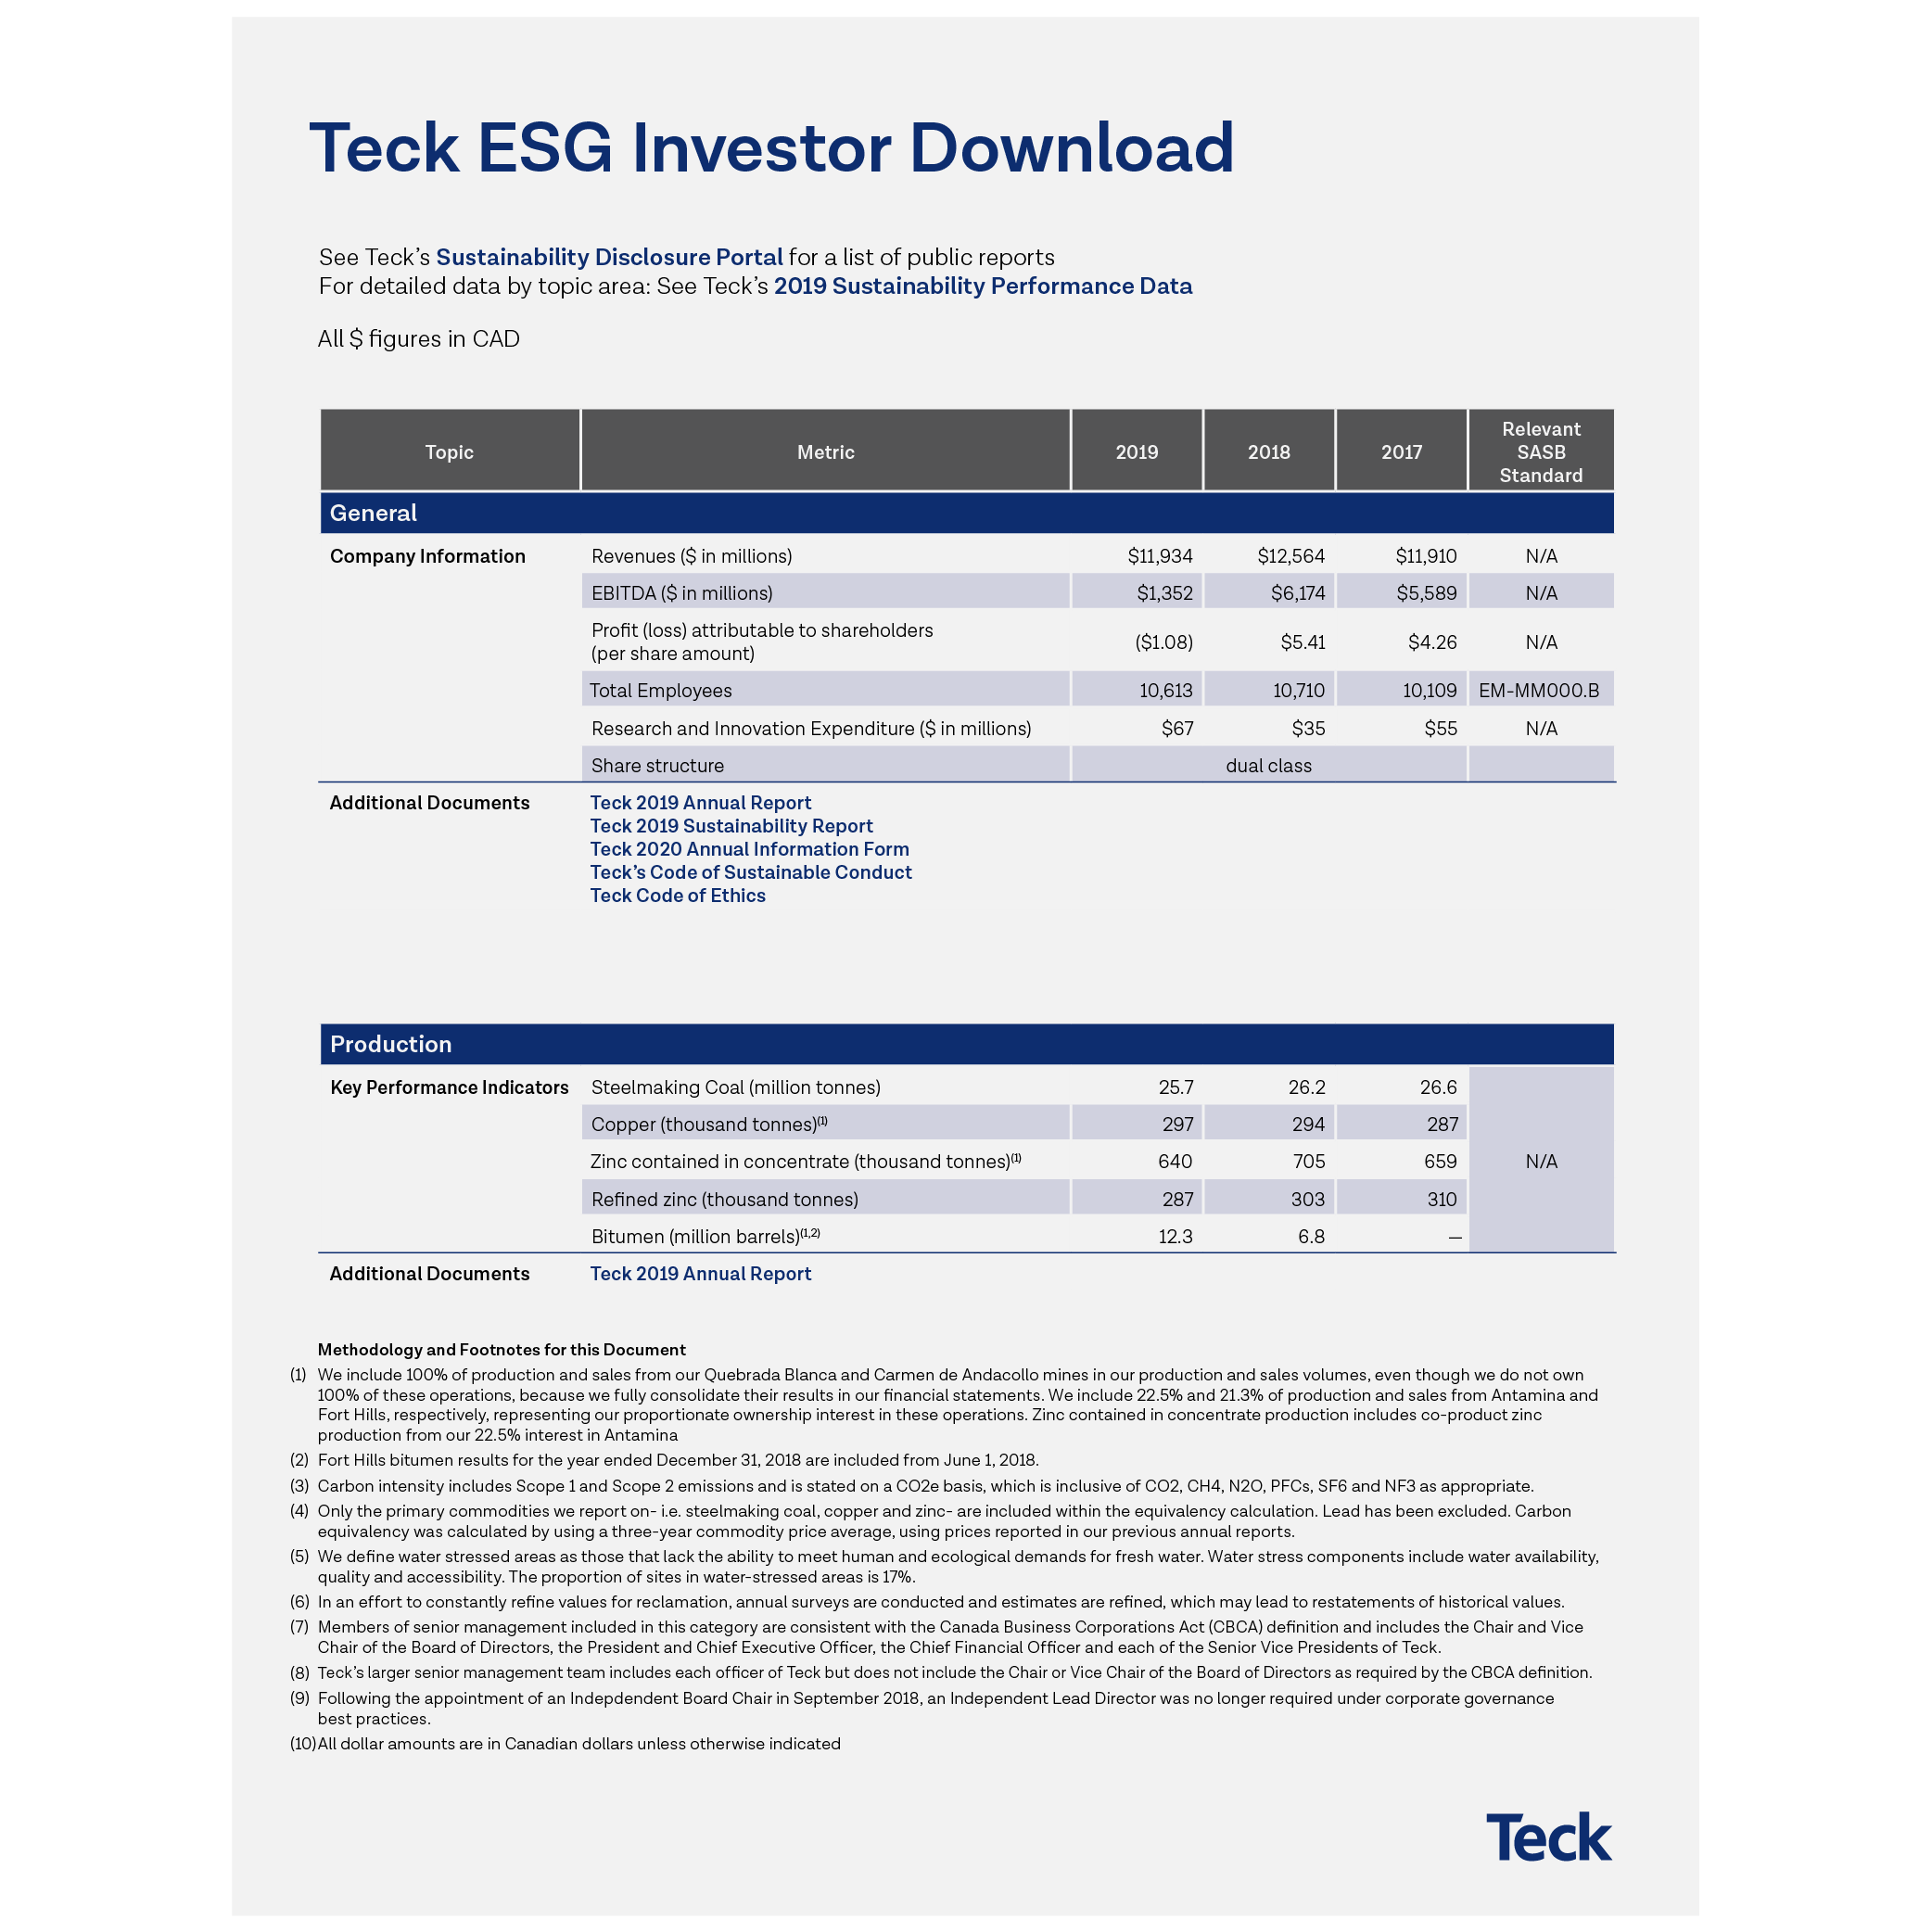 ESG Investor Download